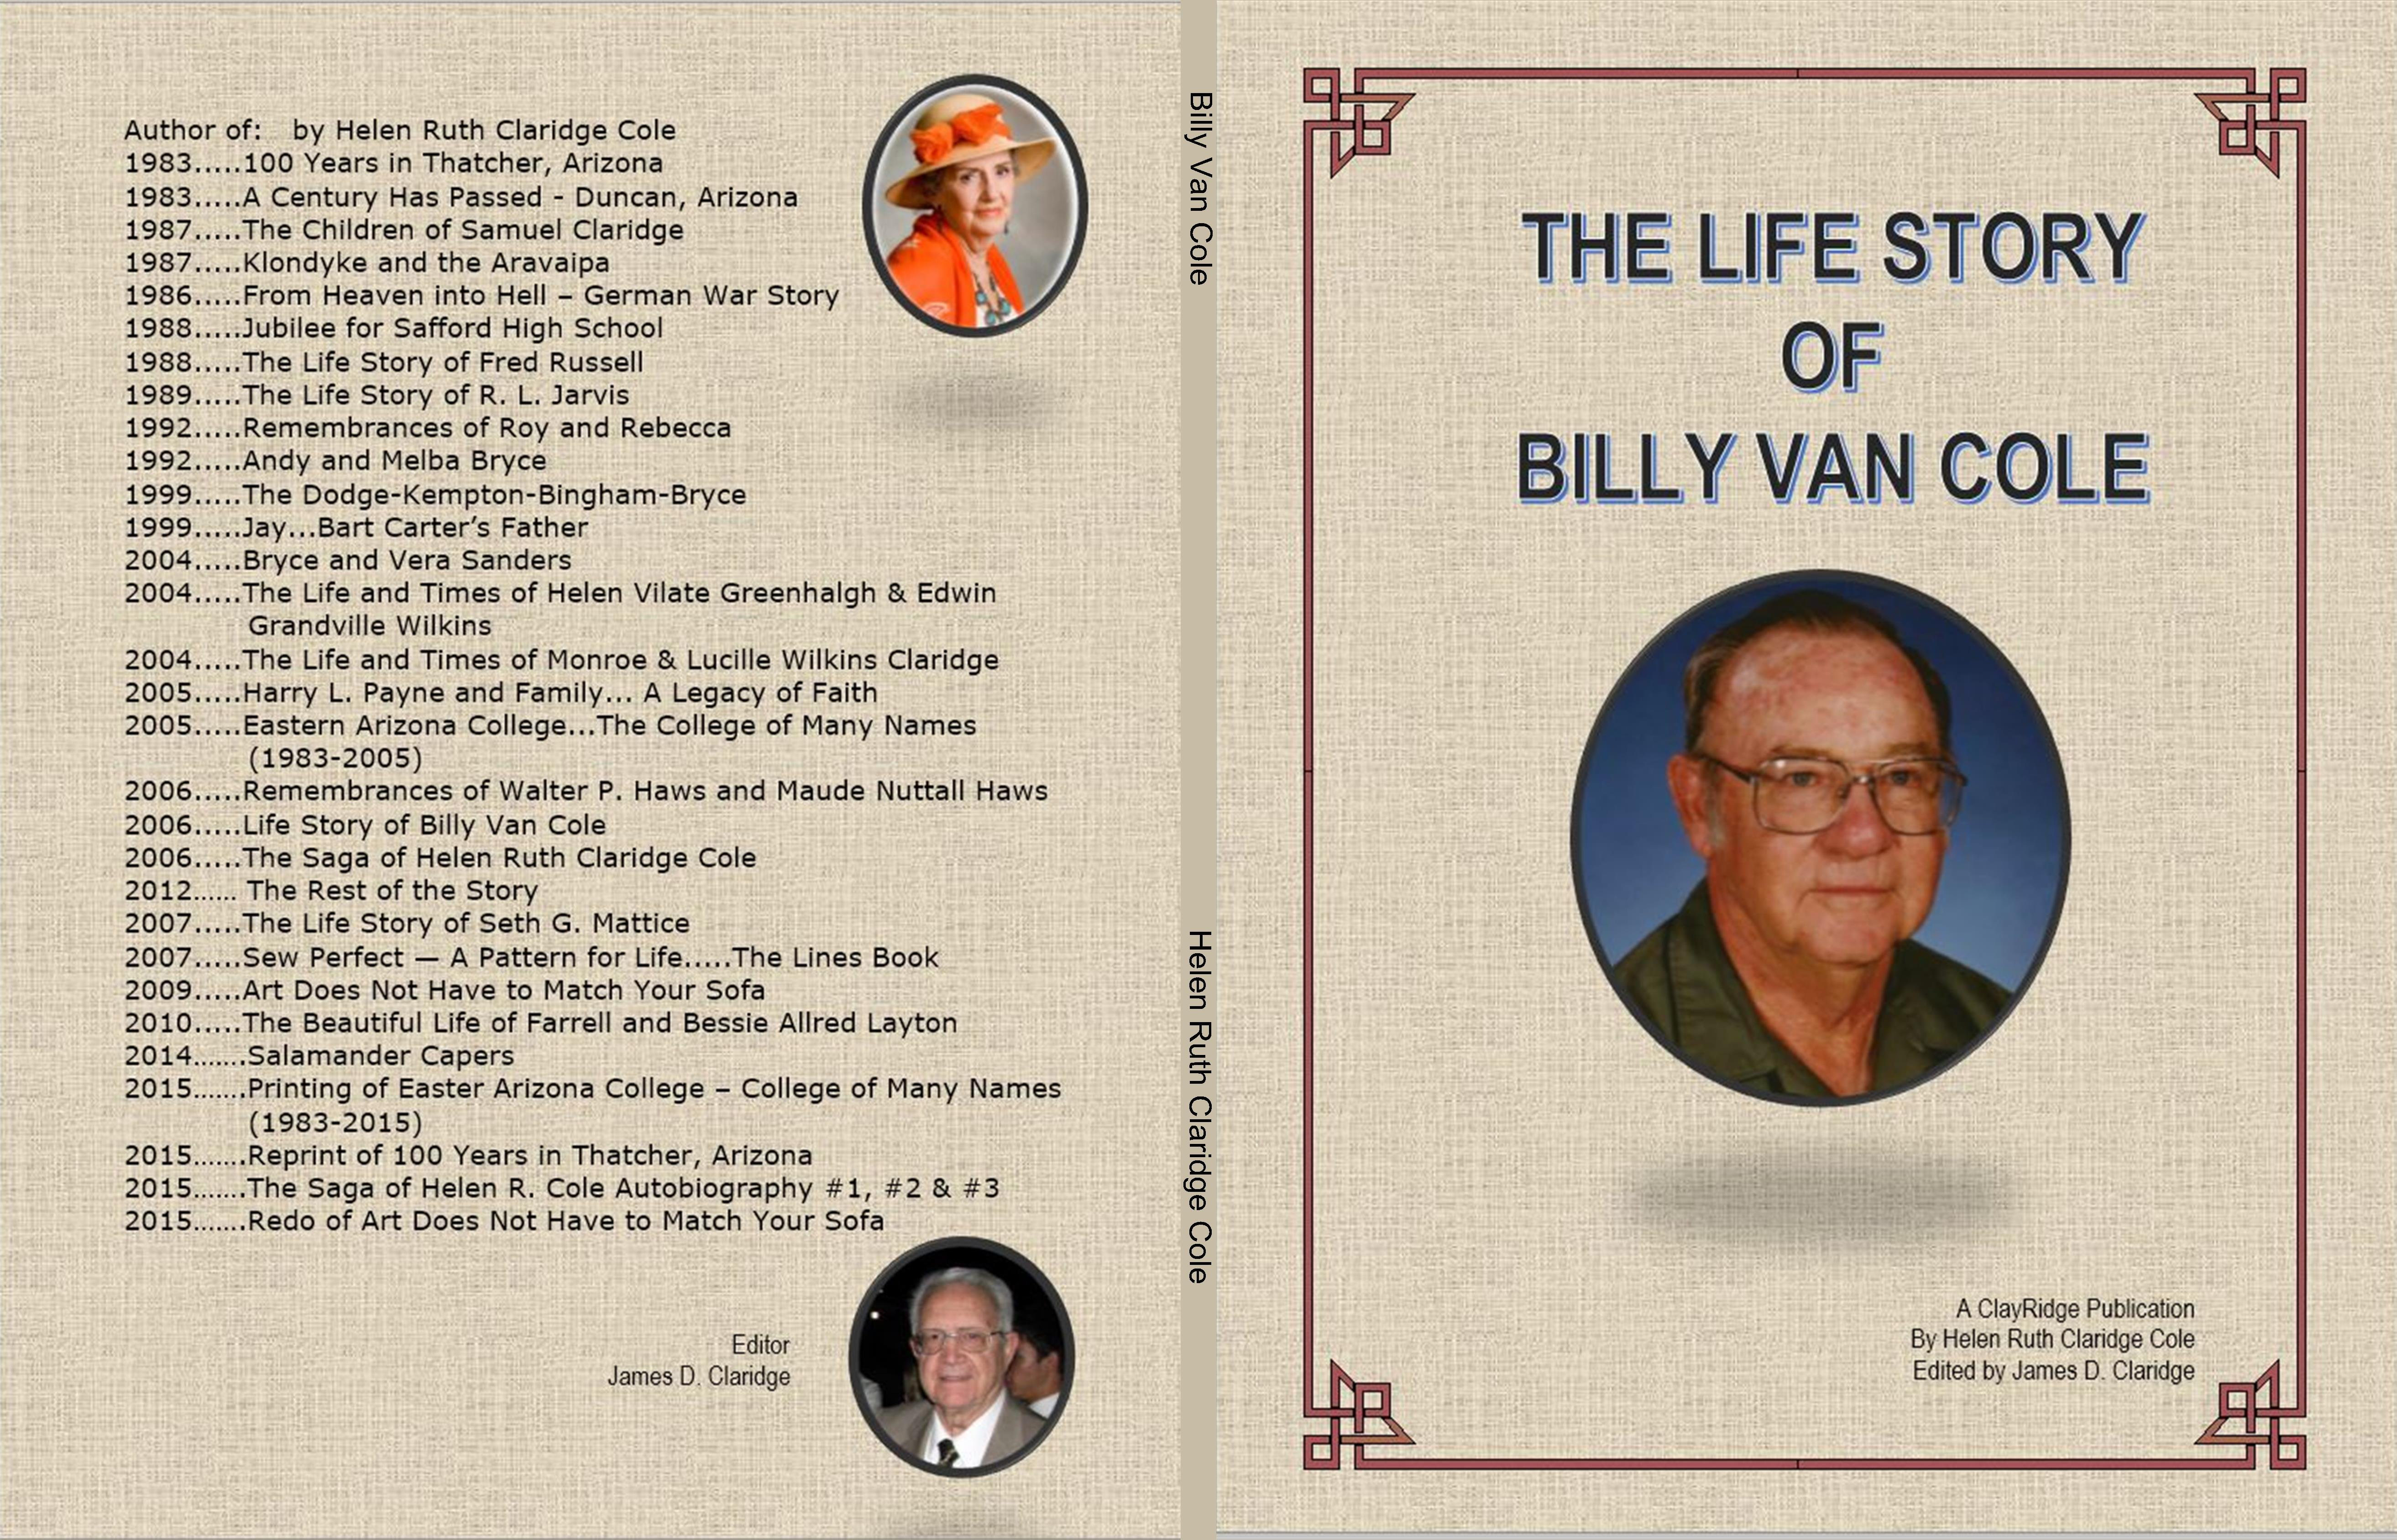 Billy Van Cole cover image